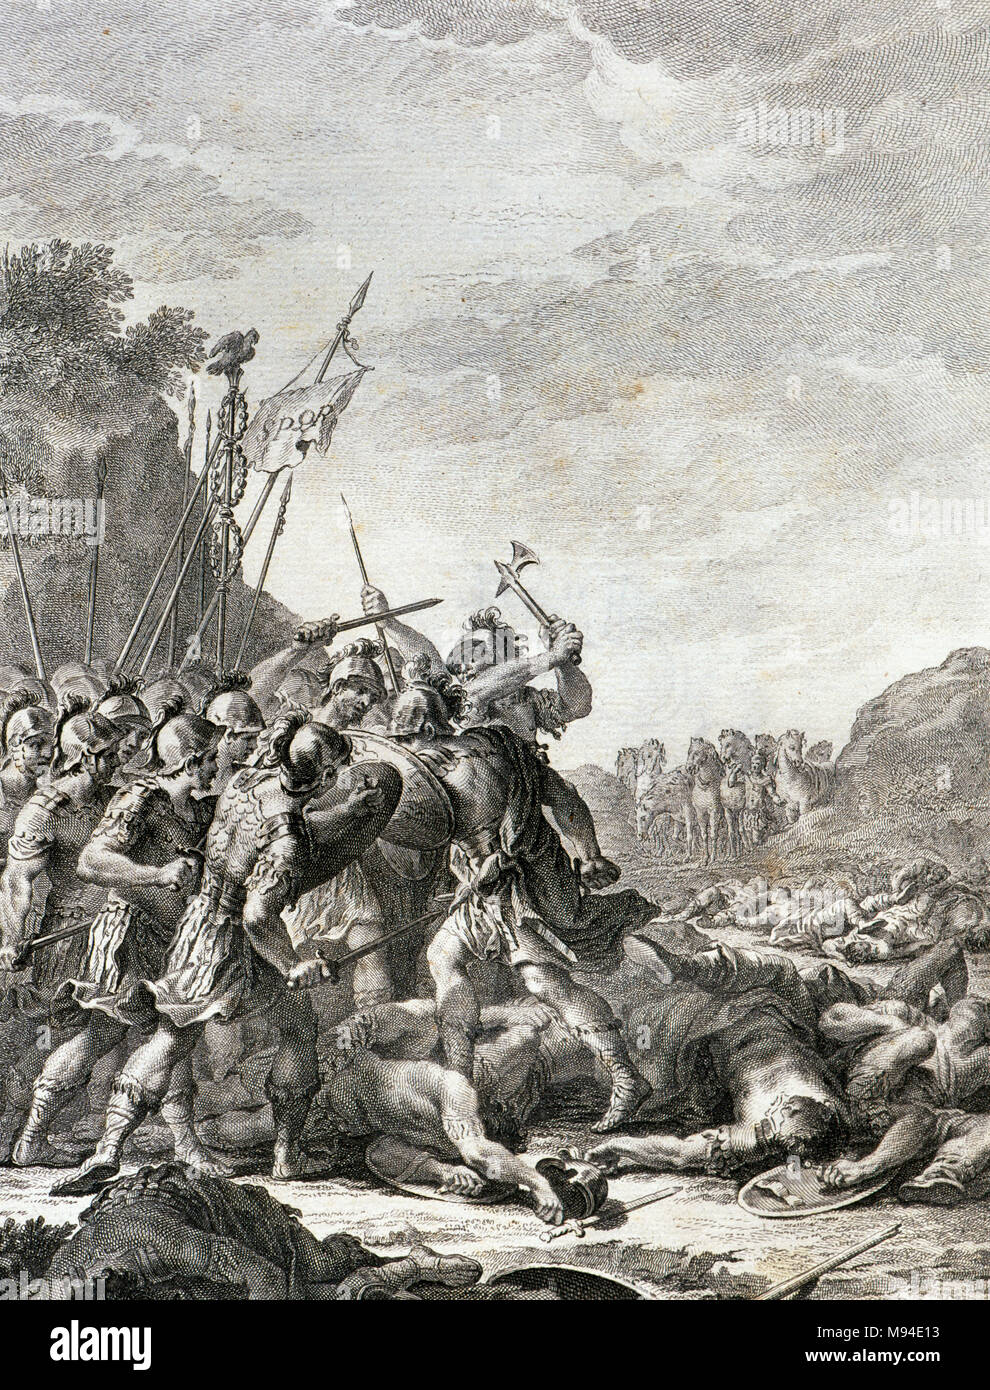 Sallust (Gaius Sallustius Crispus) (ca.86-35 BC). Roman historian and politician. The death of Catiline in Gaul. Engraving from The Conspiracy of Catilina, edition of 1772. Library of Catalonia. Barcelona, Catalonia, Spain. - Stock Image